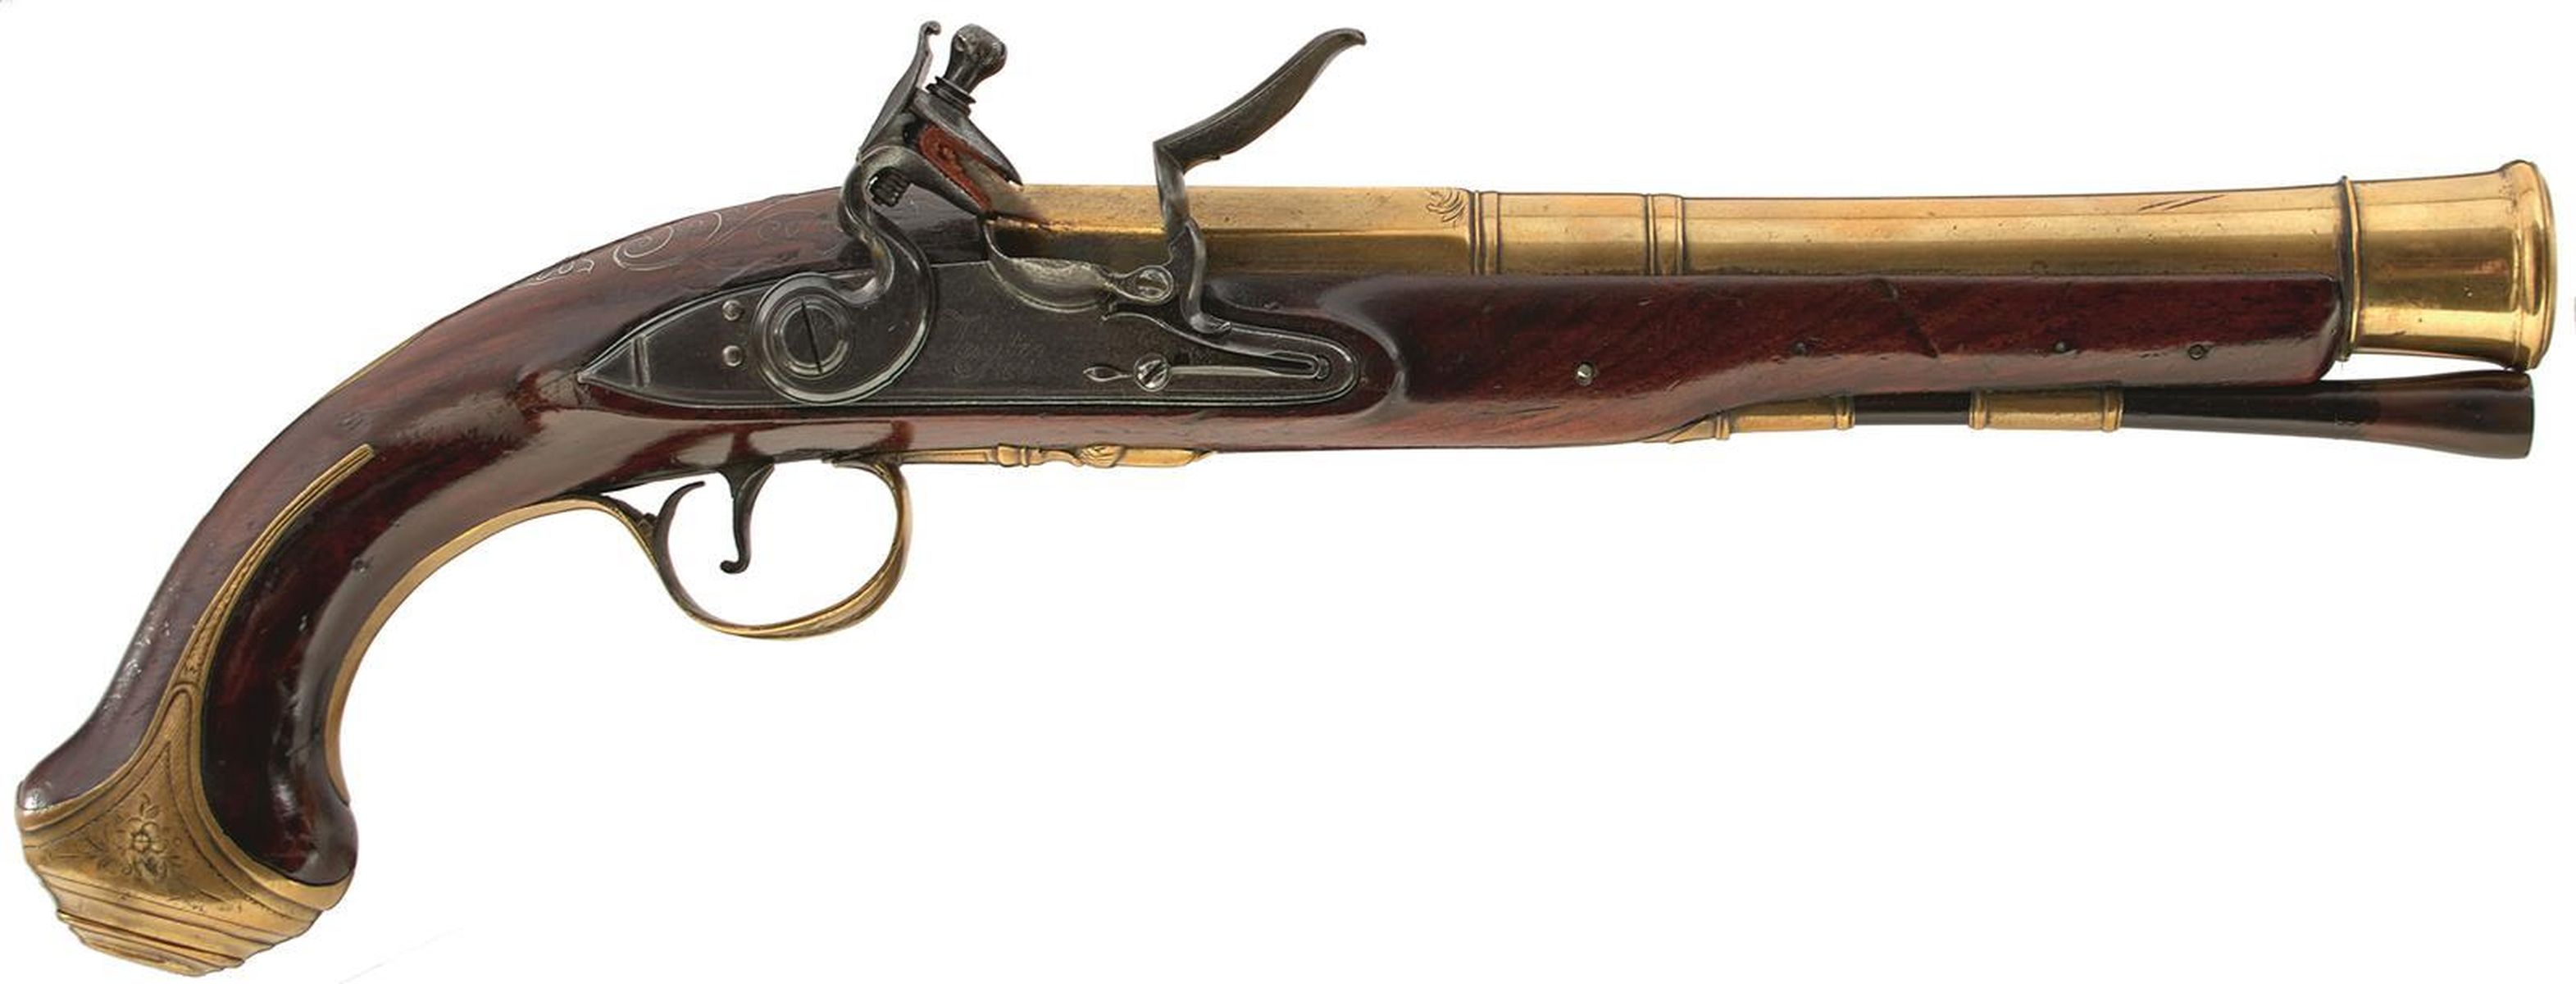 A CASED PAIR OF 6-BORE FLINTLOCK BRASS BARRELLED BLUNDERBUSS PISTOLS BY TAYLER, 9inch four stage - Image 4 of 25